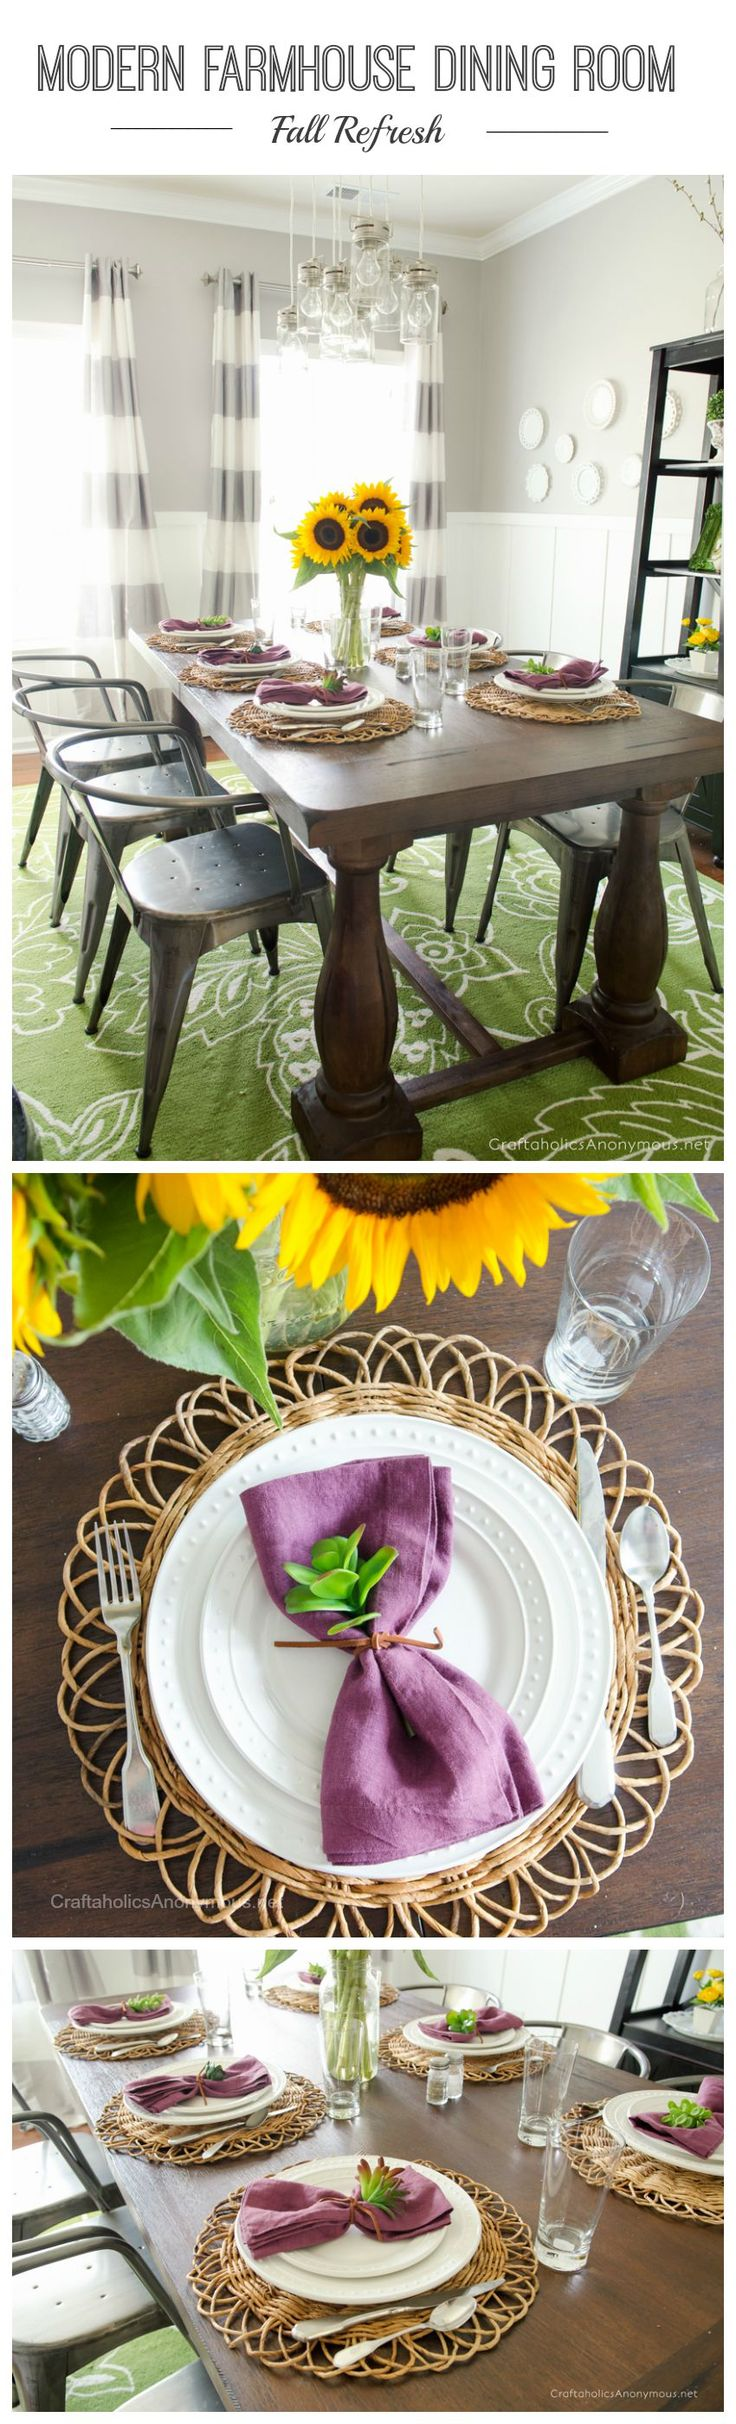 Modern farmhouse dining room || love the light fixture and the sunflowers! Oh and the table is pretty sweet too.